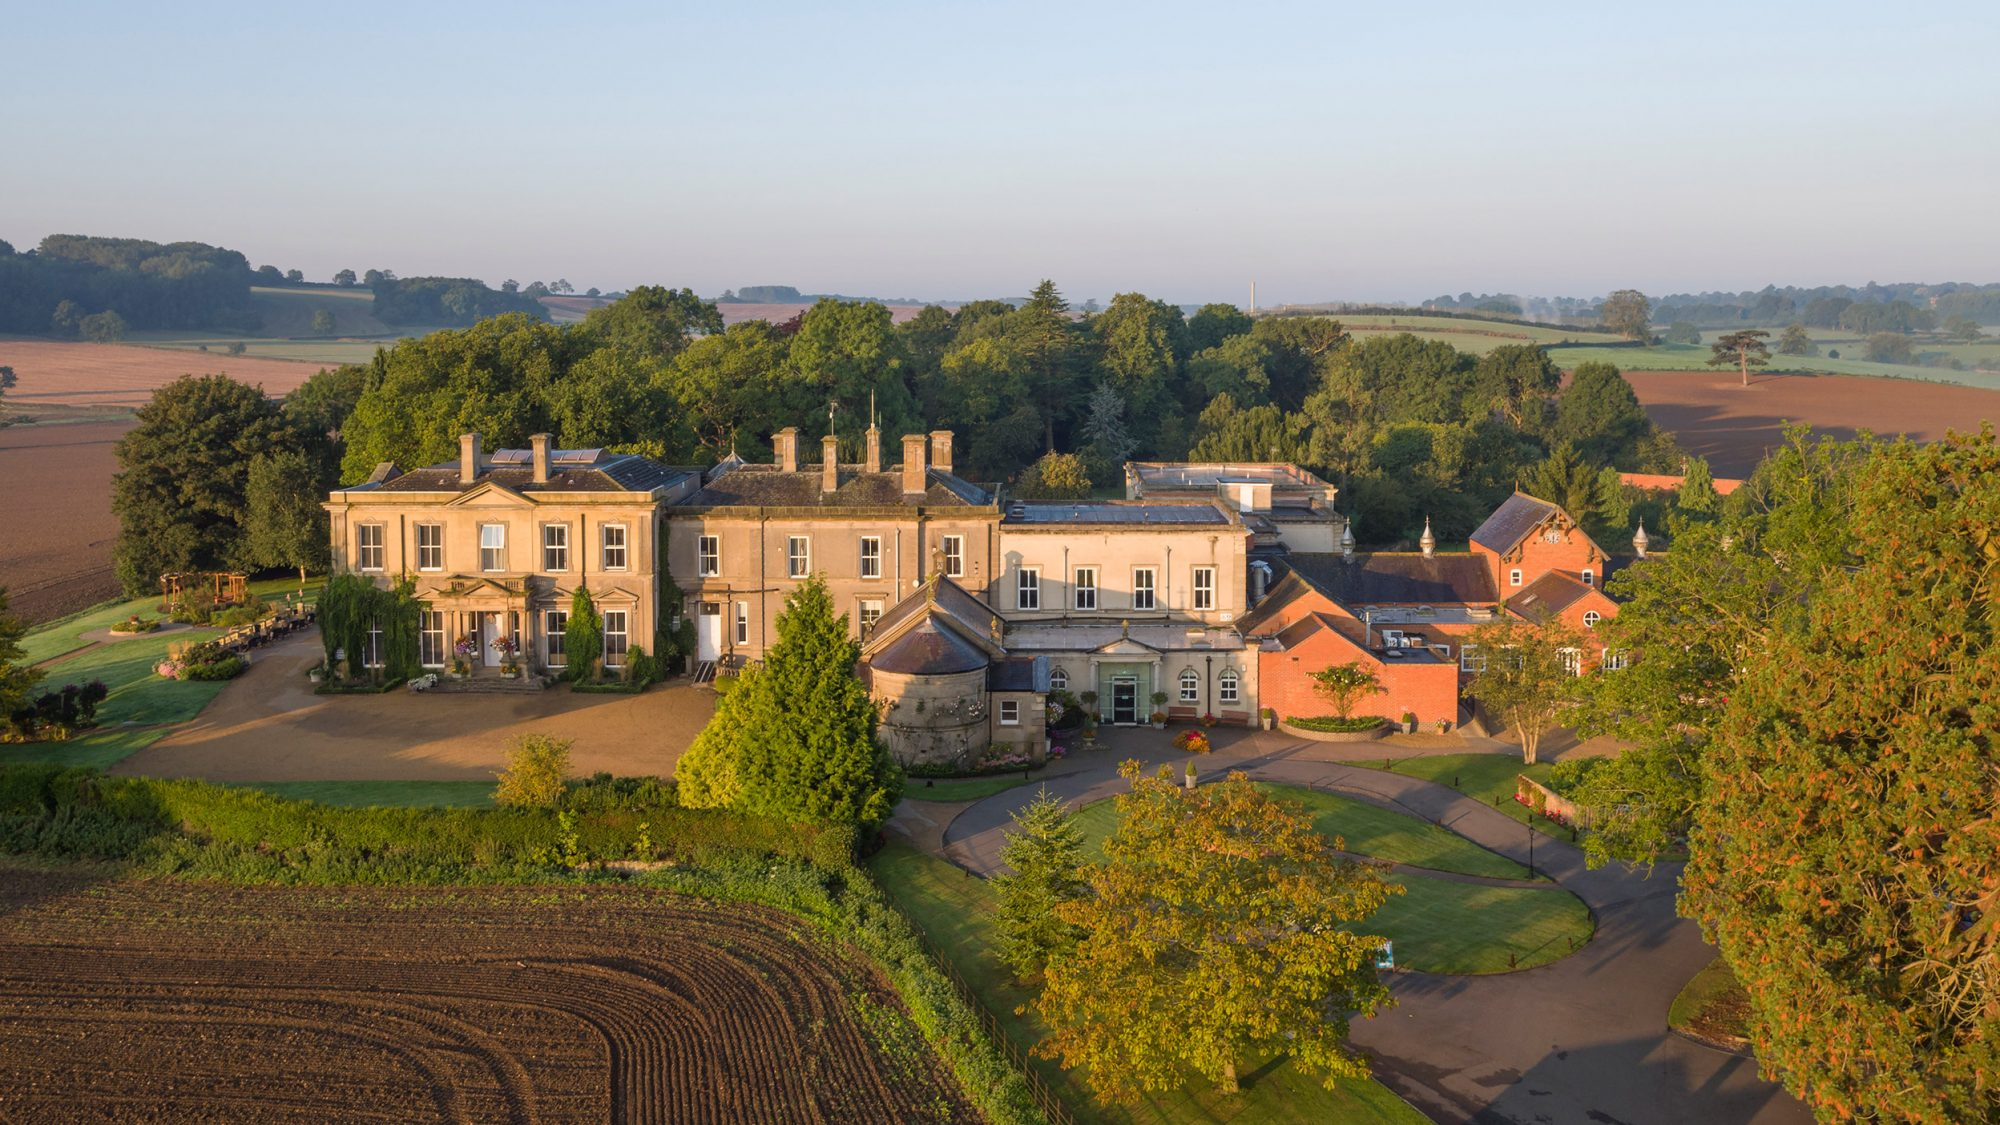 Aerial photo of Hothorpe Hall bathed in sunlight